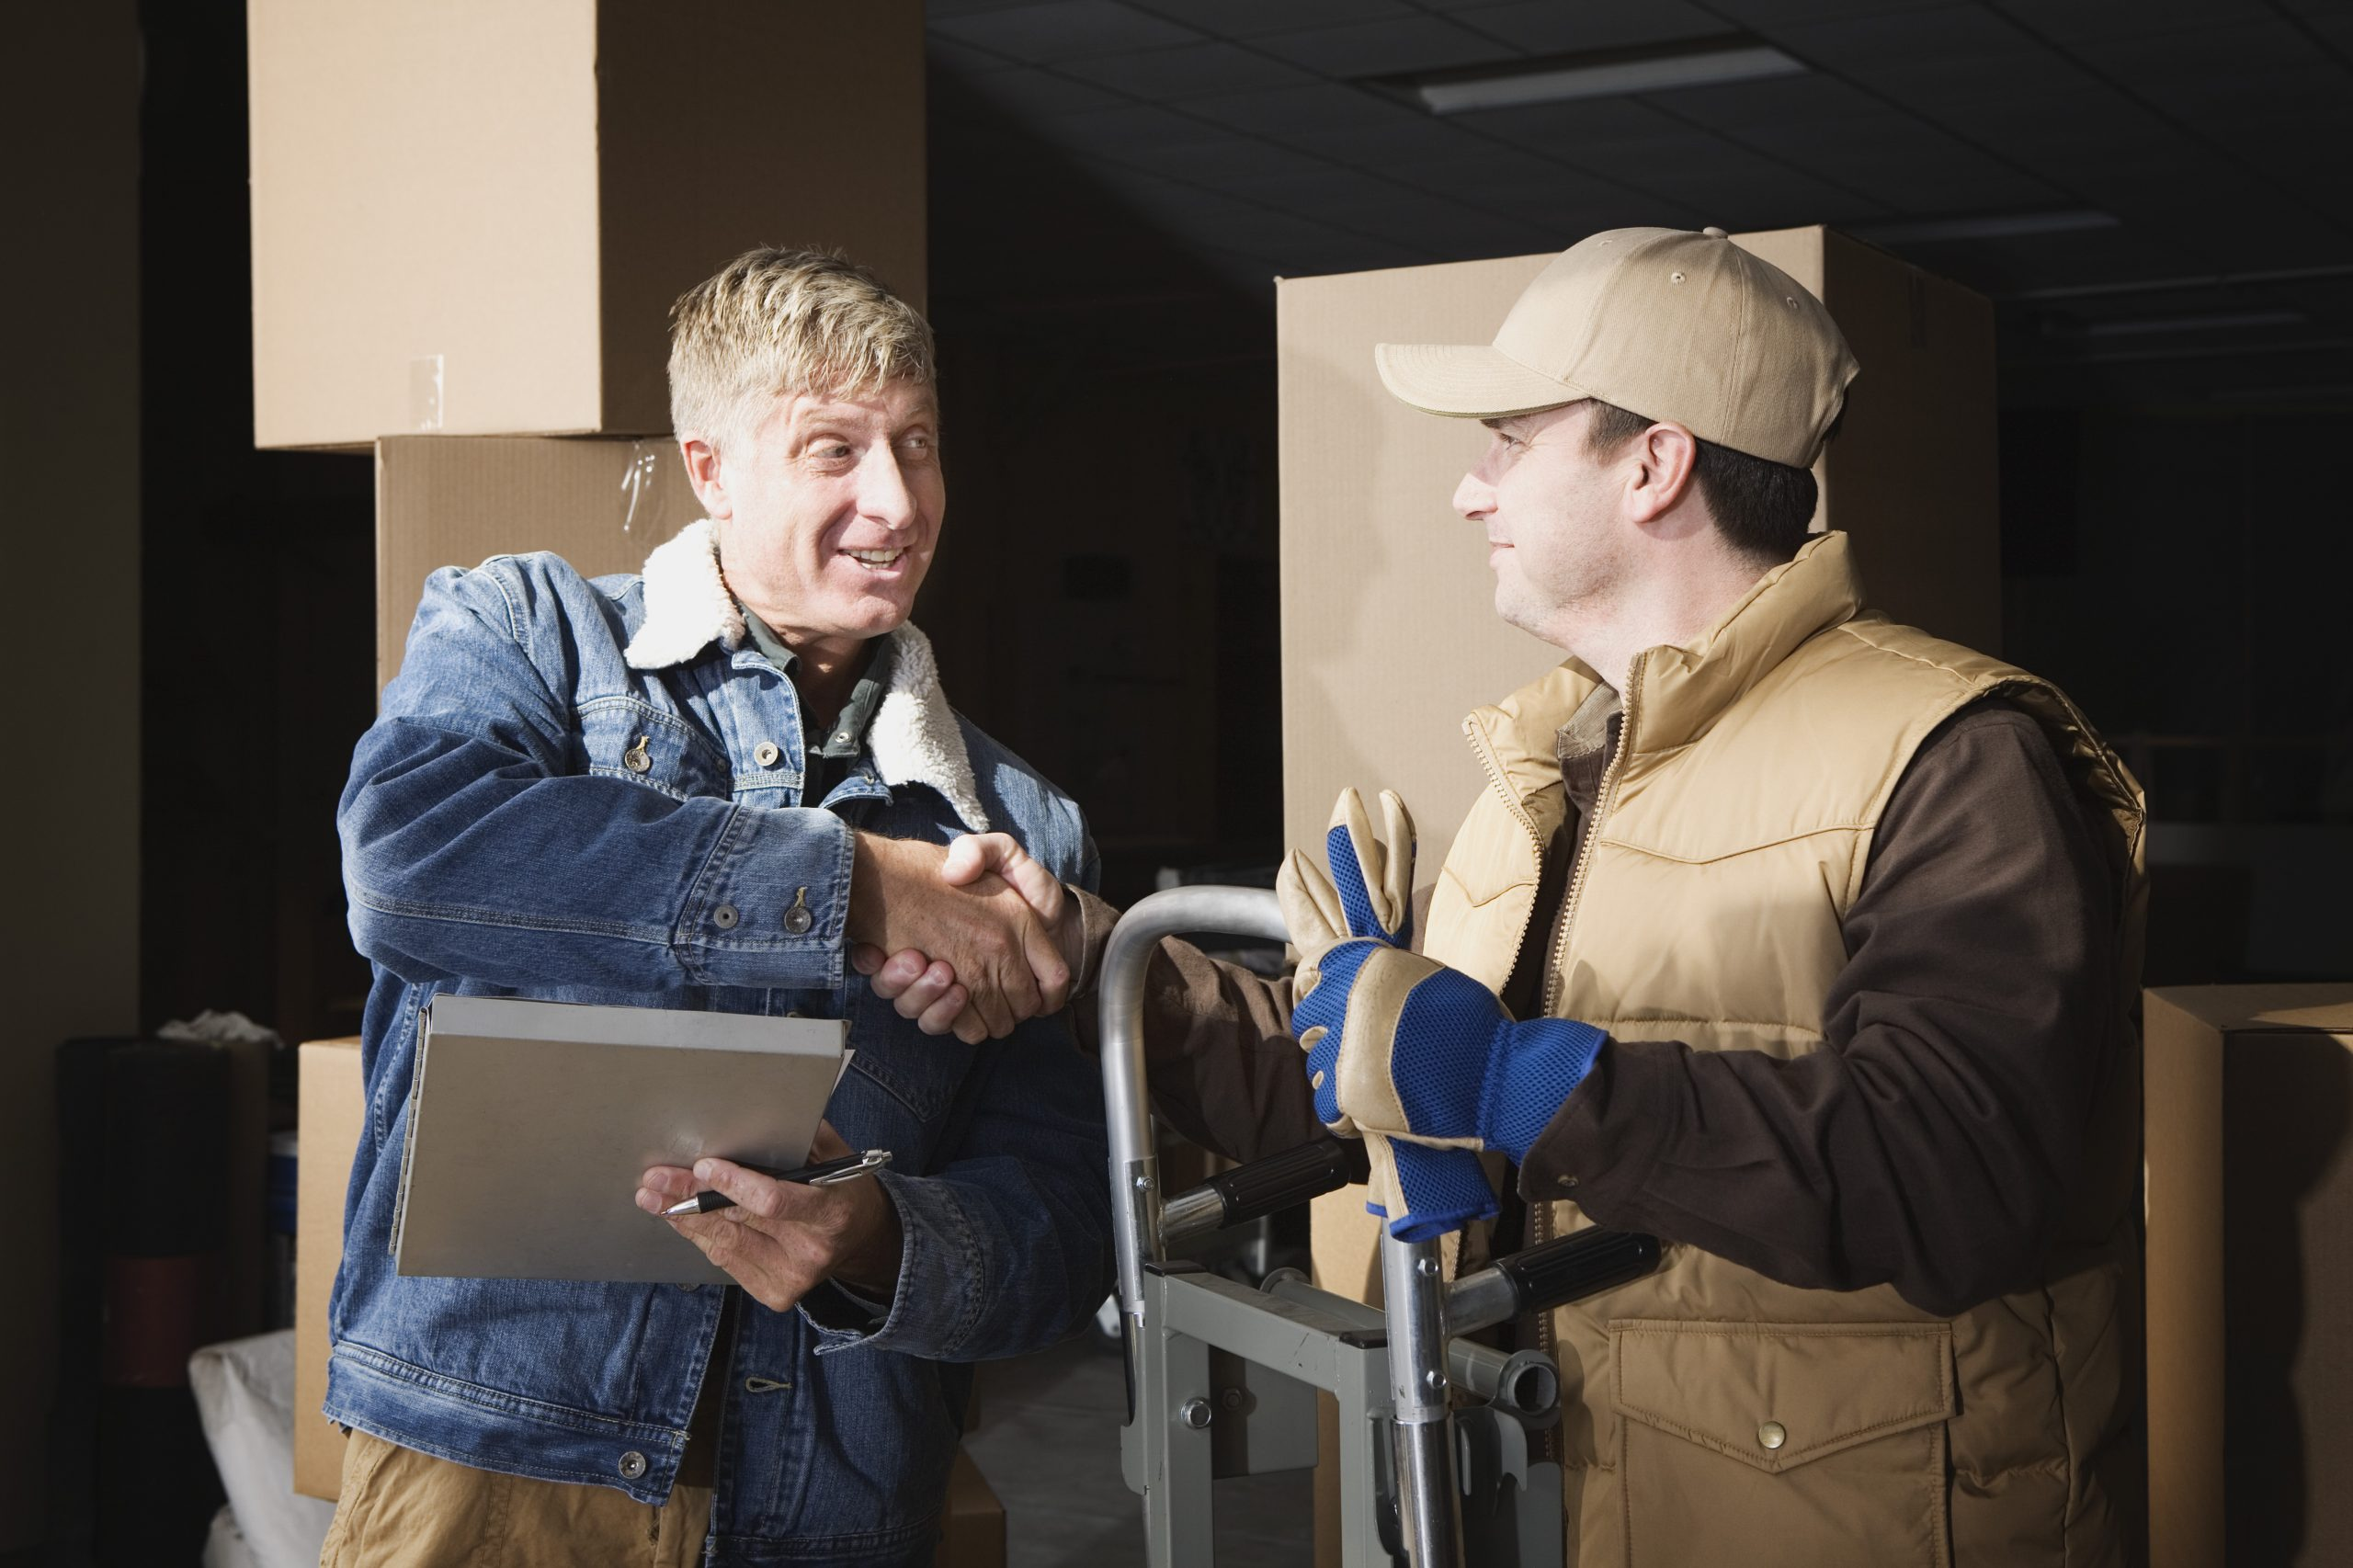 Customer shaking hands with deliveryman